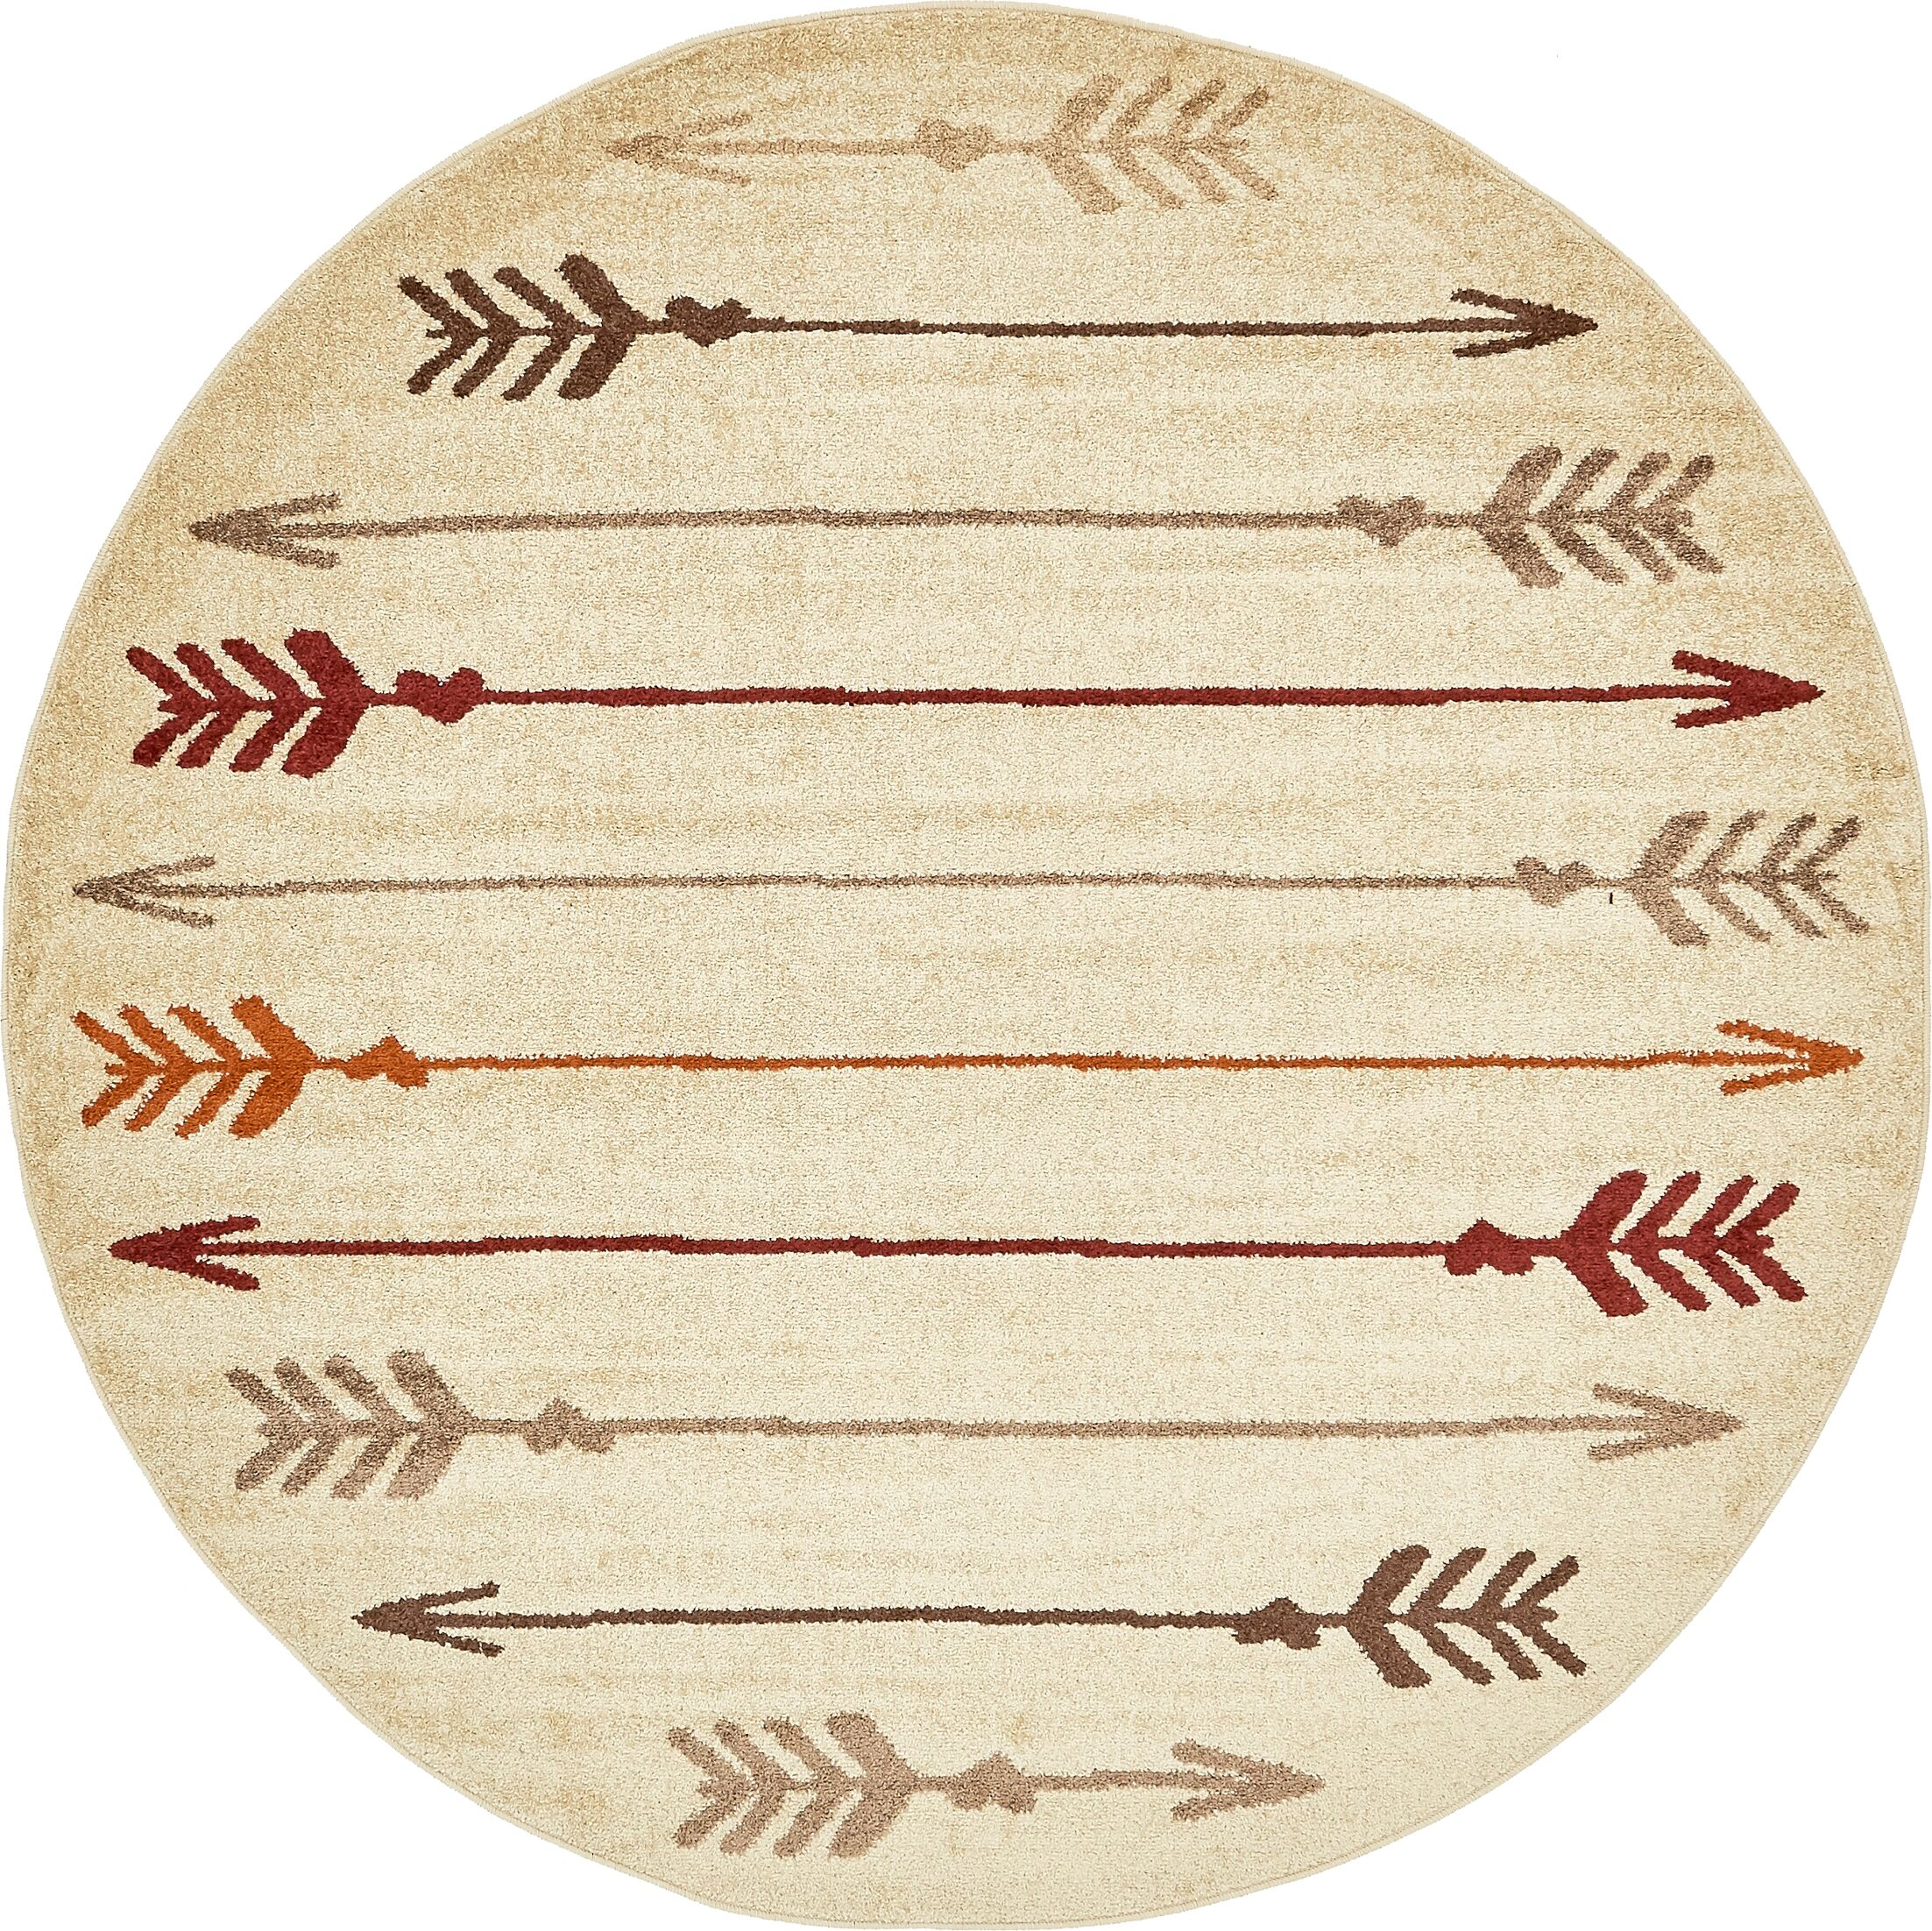 Picabo Beige Area Rug Rug Size: Round 8' x 8'